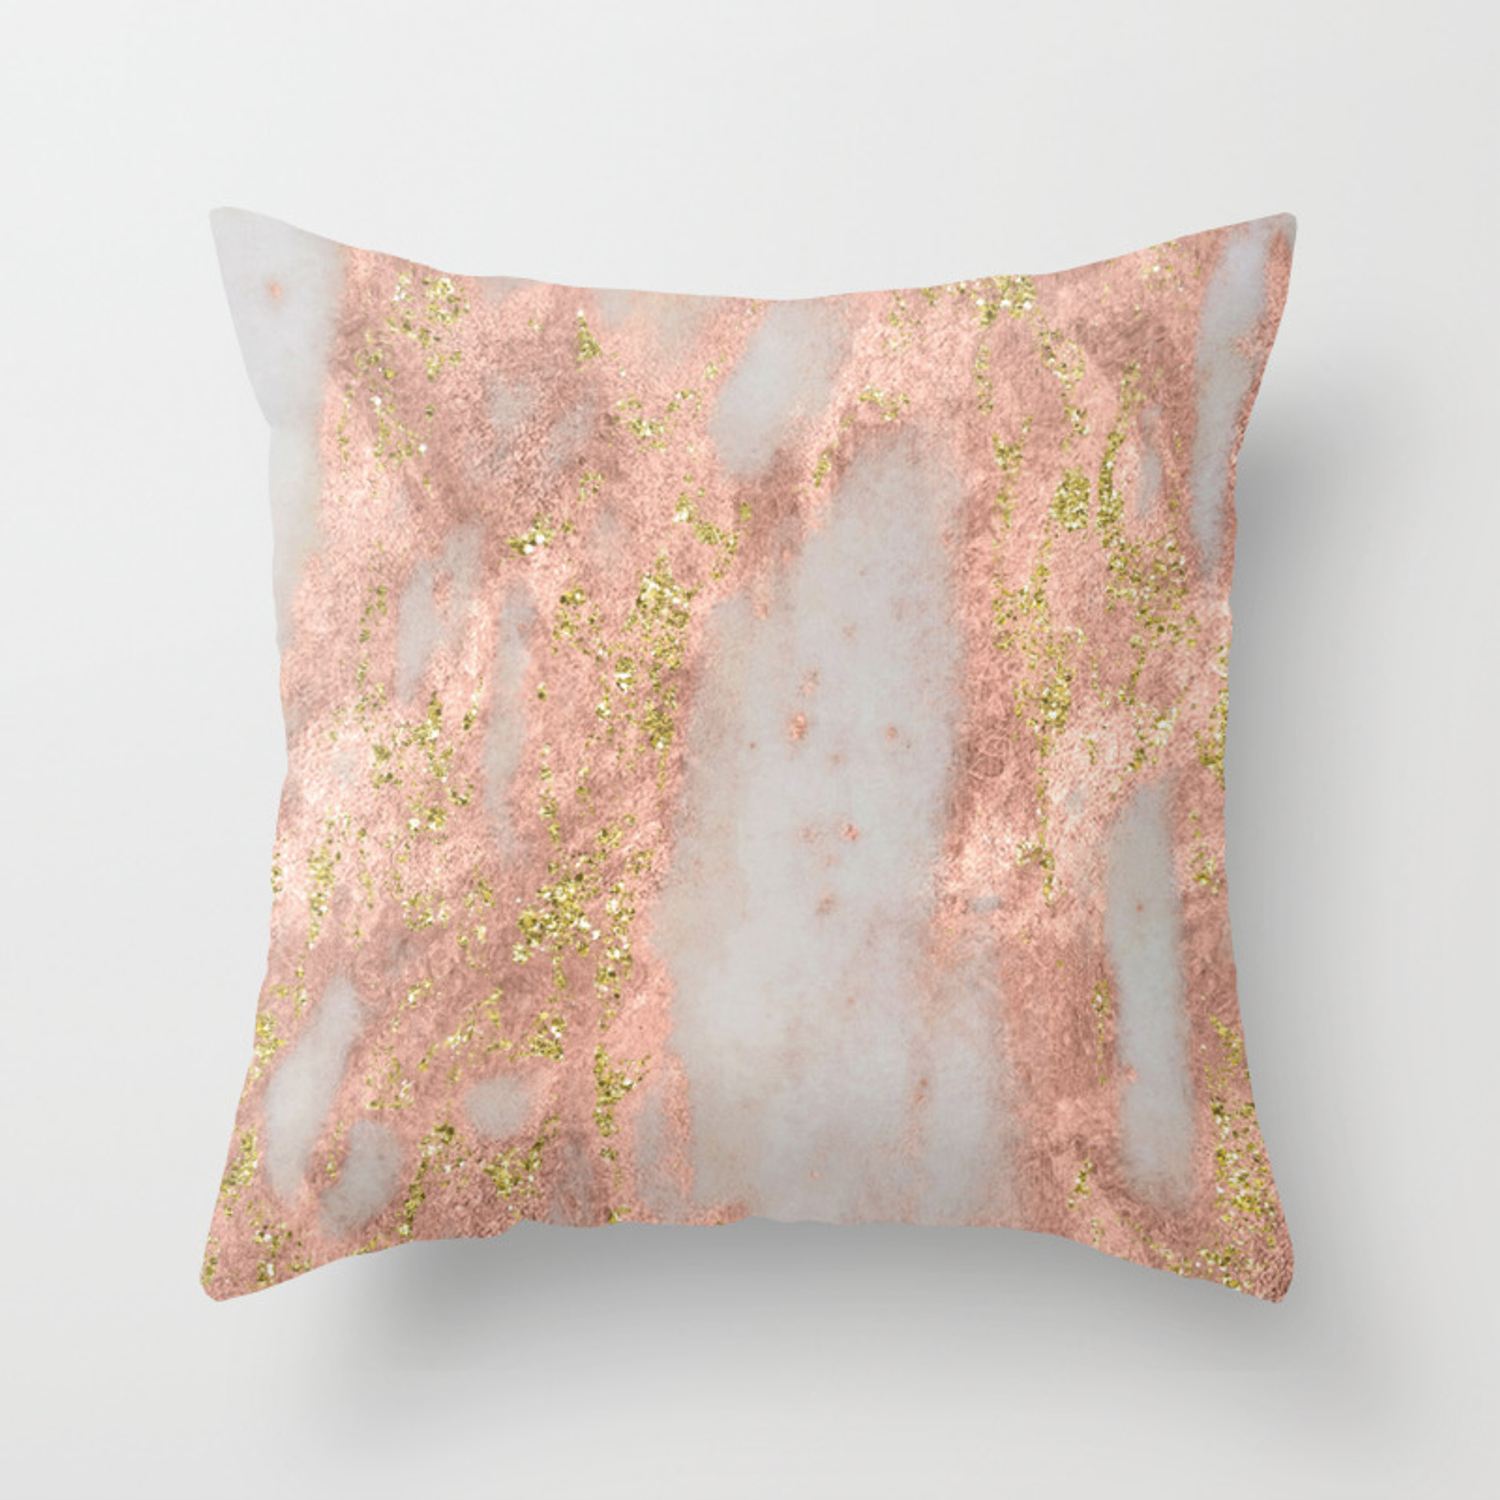 Yellow Gold Throw Pillows.Rose Gold Marble With Yellow Gold Glitter Throw Pillow